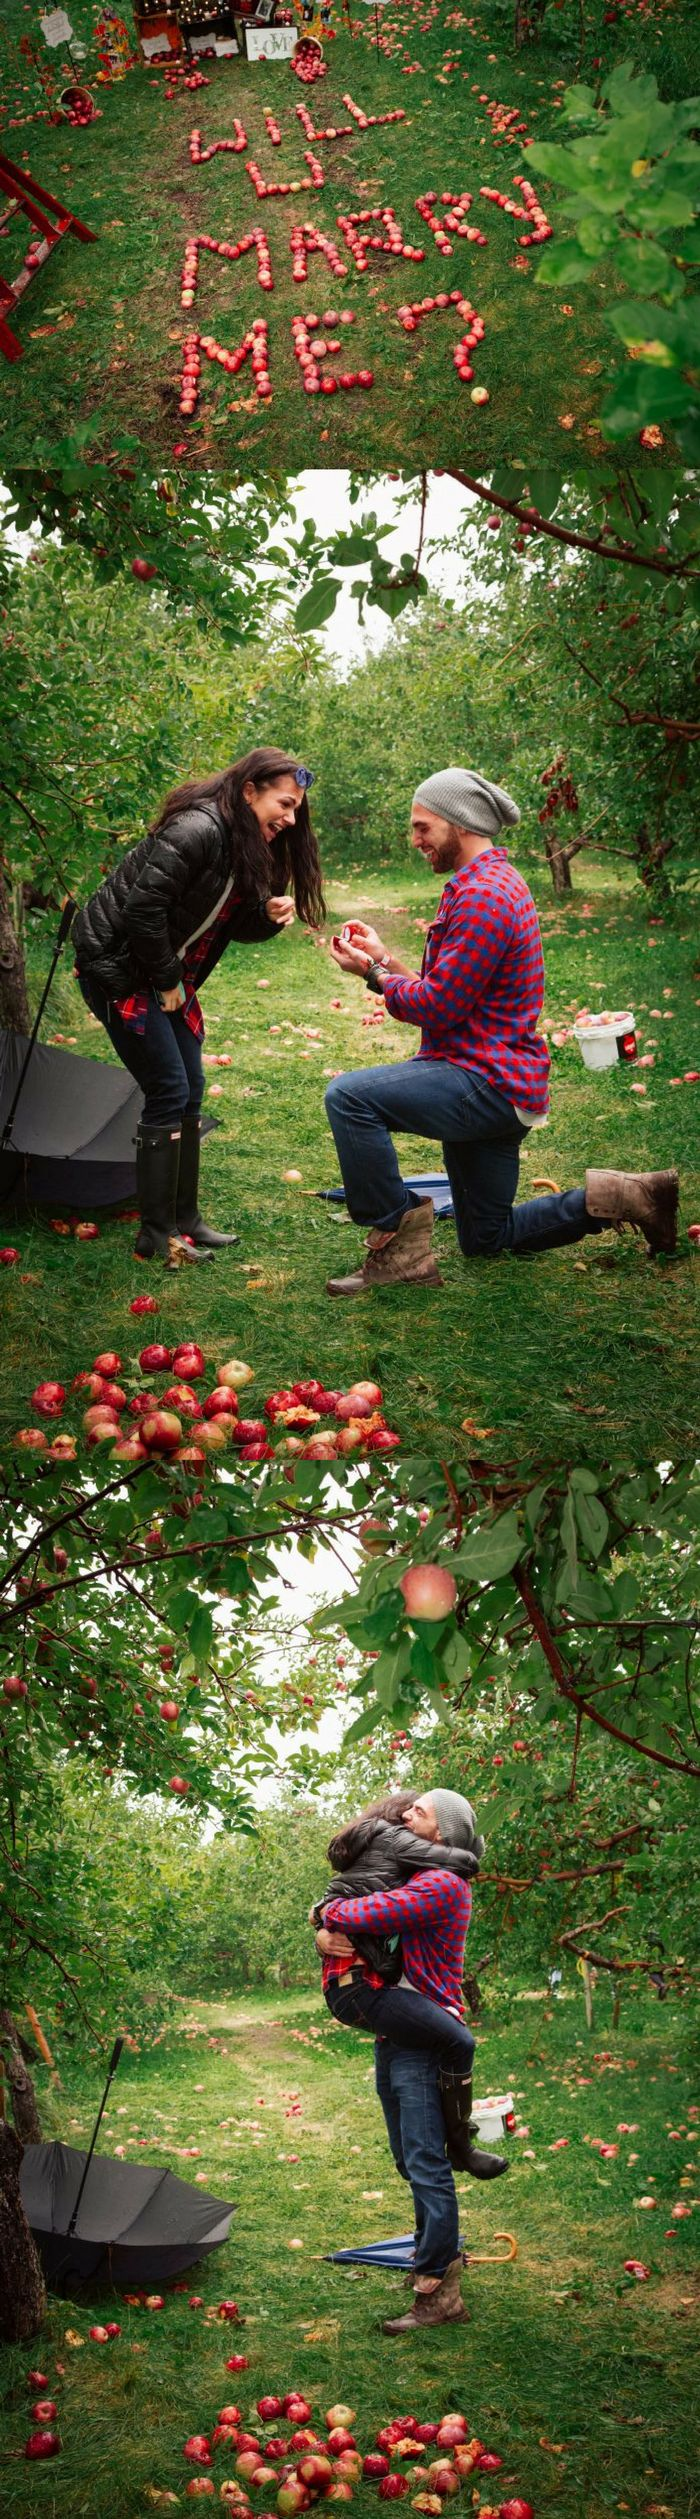 They were picking apples in an orchard when he asked her to marry him! It was the cutest surprise proposal.